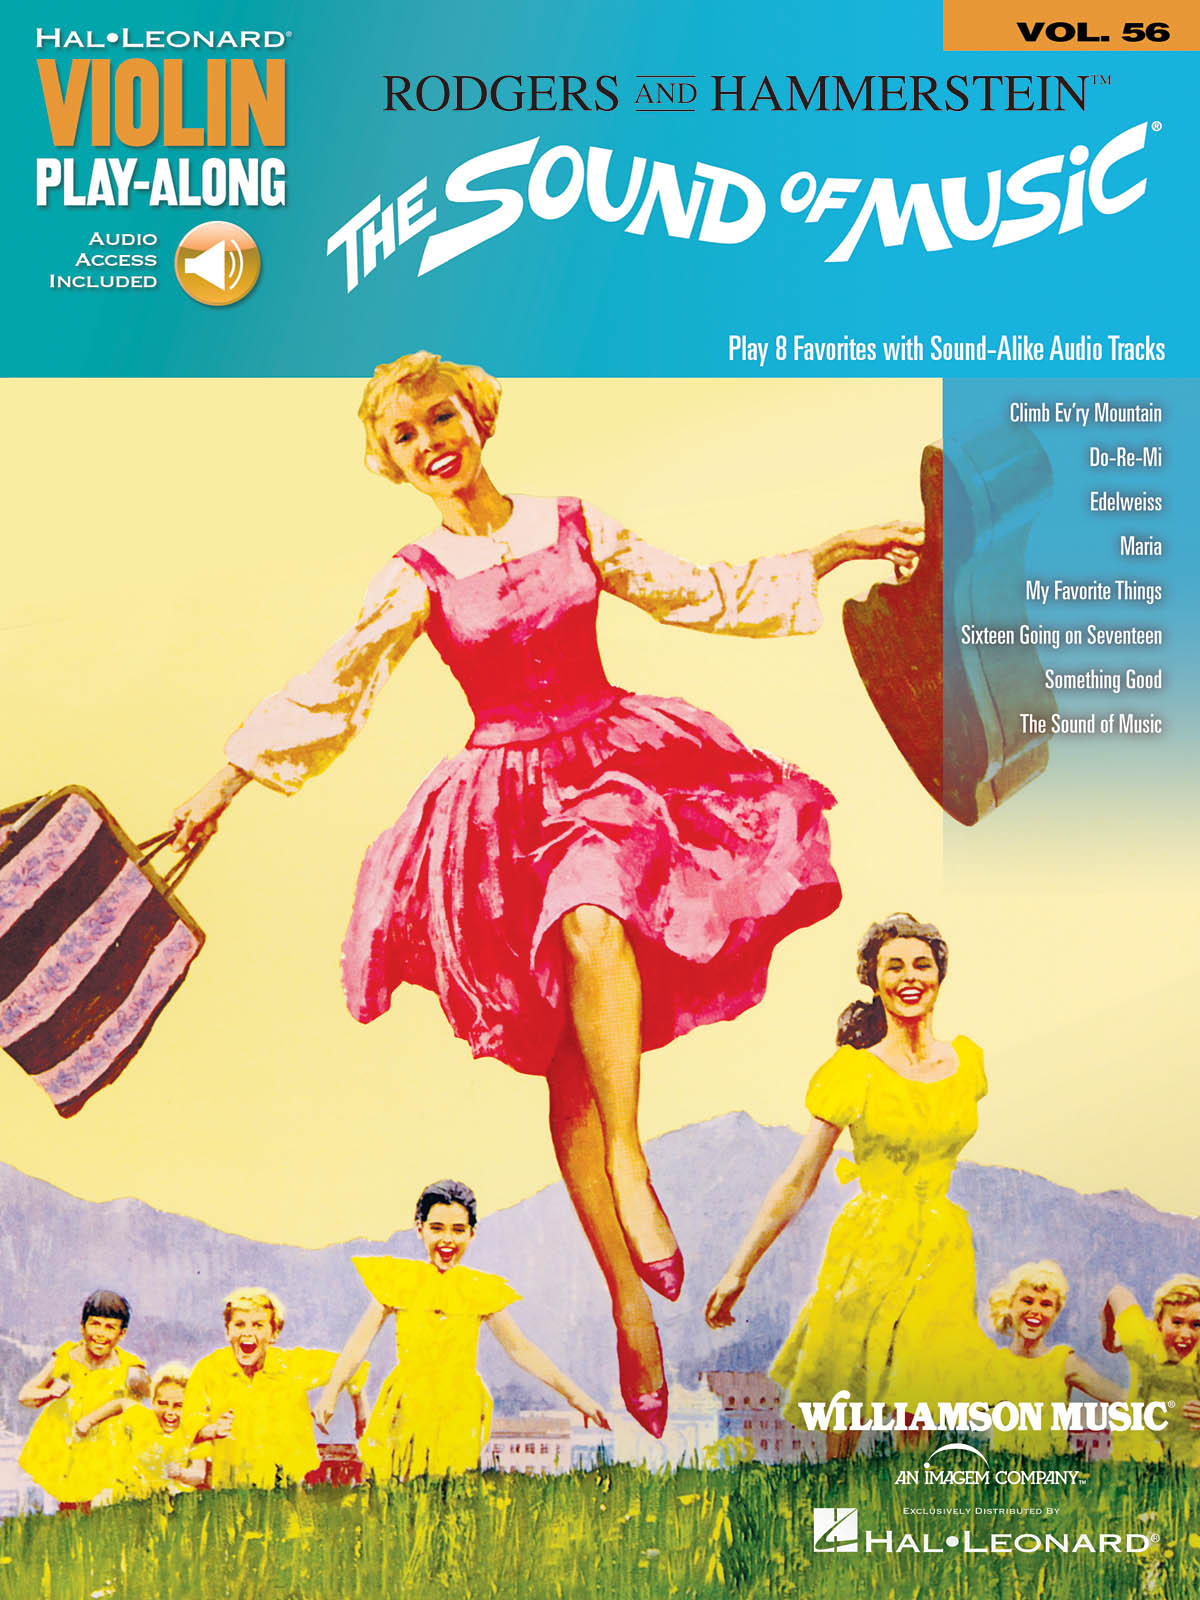 Violin Play-Along Volume 56: The Sound Of Music (Hal Leonard Violin Play-Along) (Includes Online Access Code)